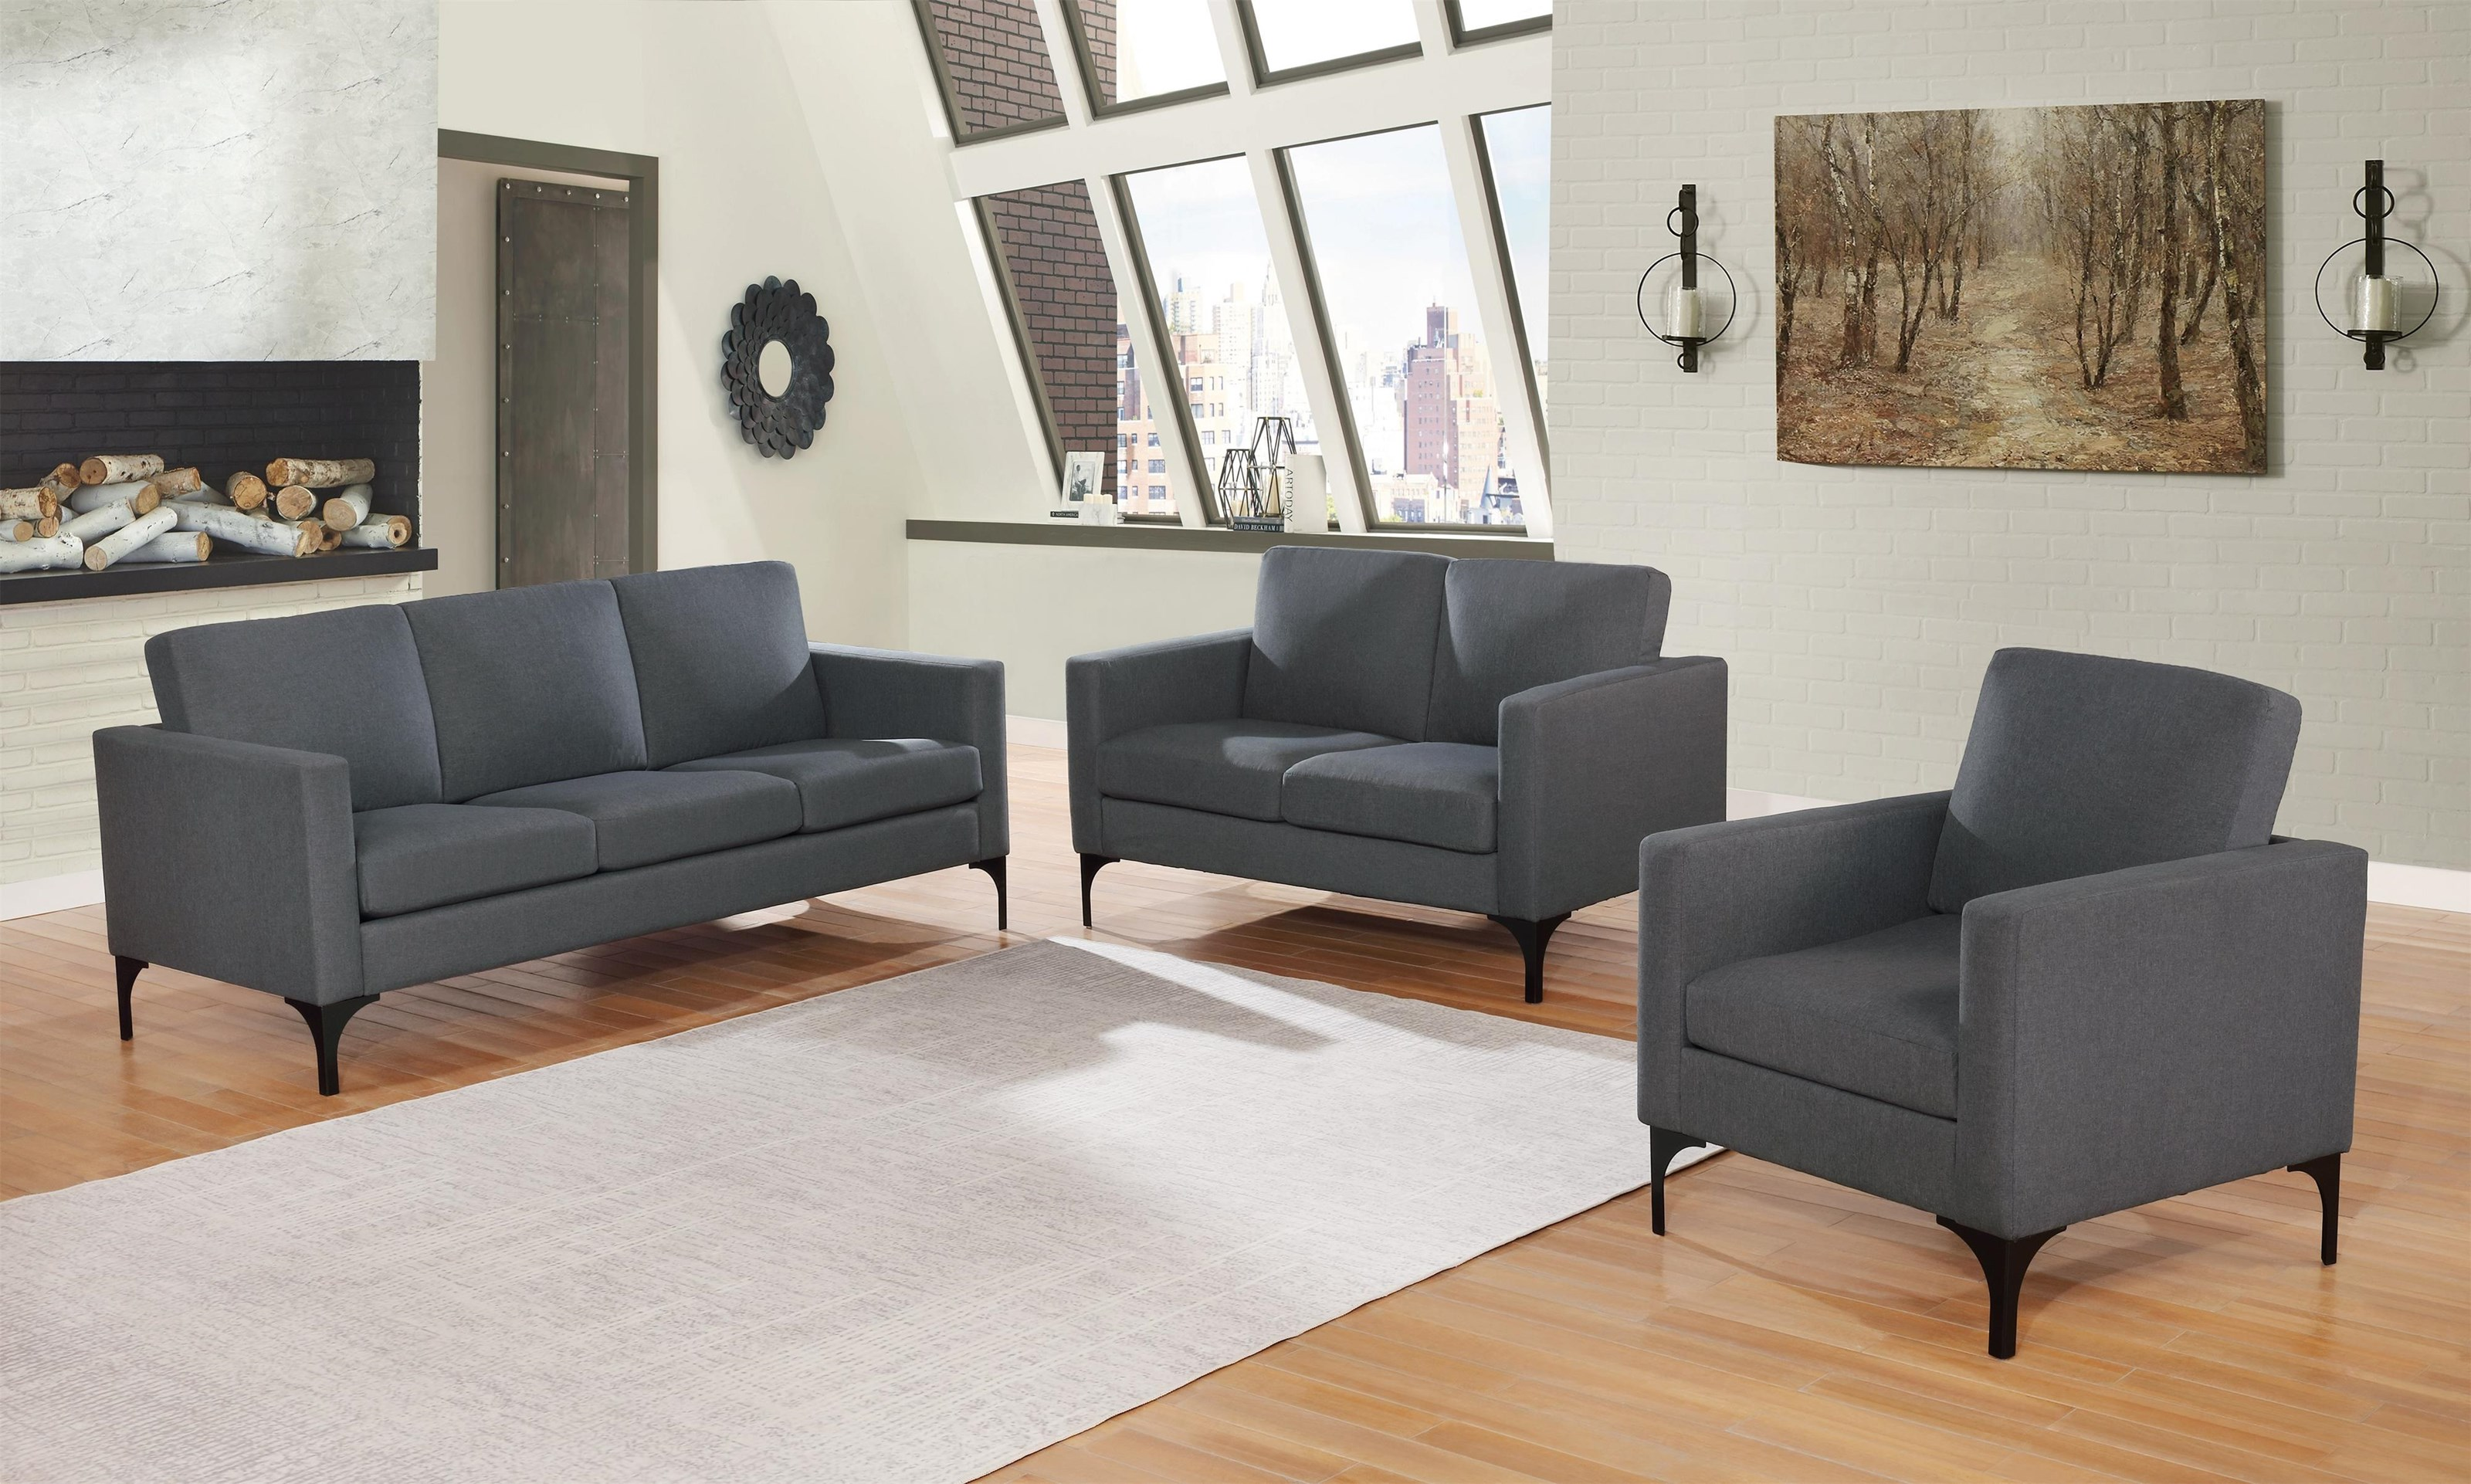 Howser 3 Piece Sofa/Loveseat/Chair by Coaster at HomeWorld Furniture